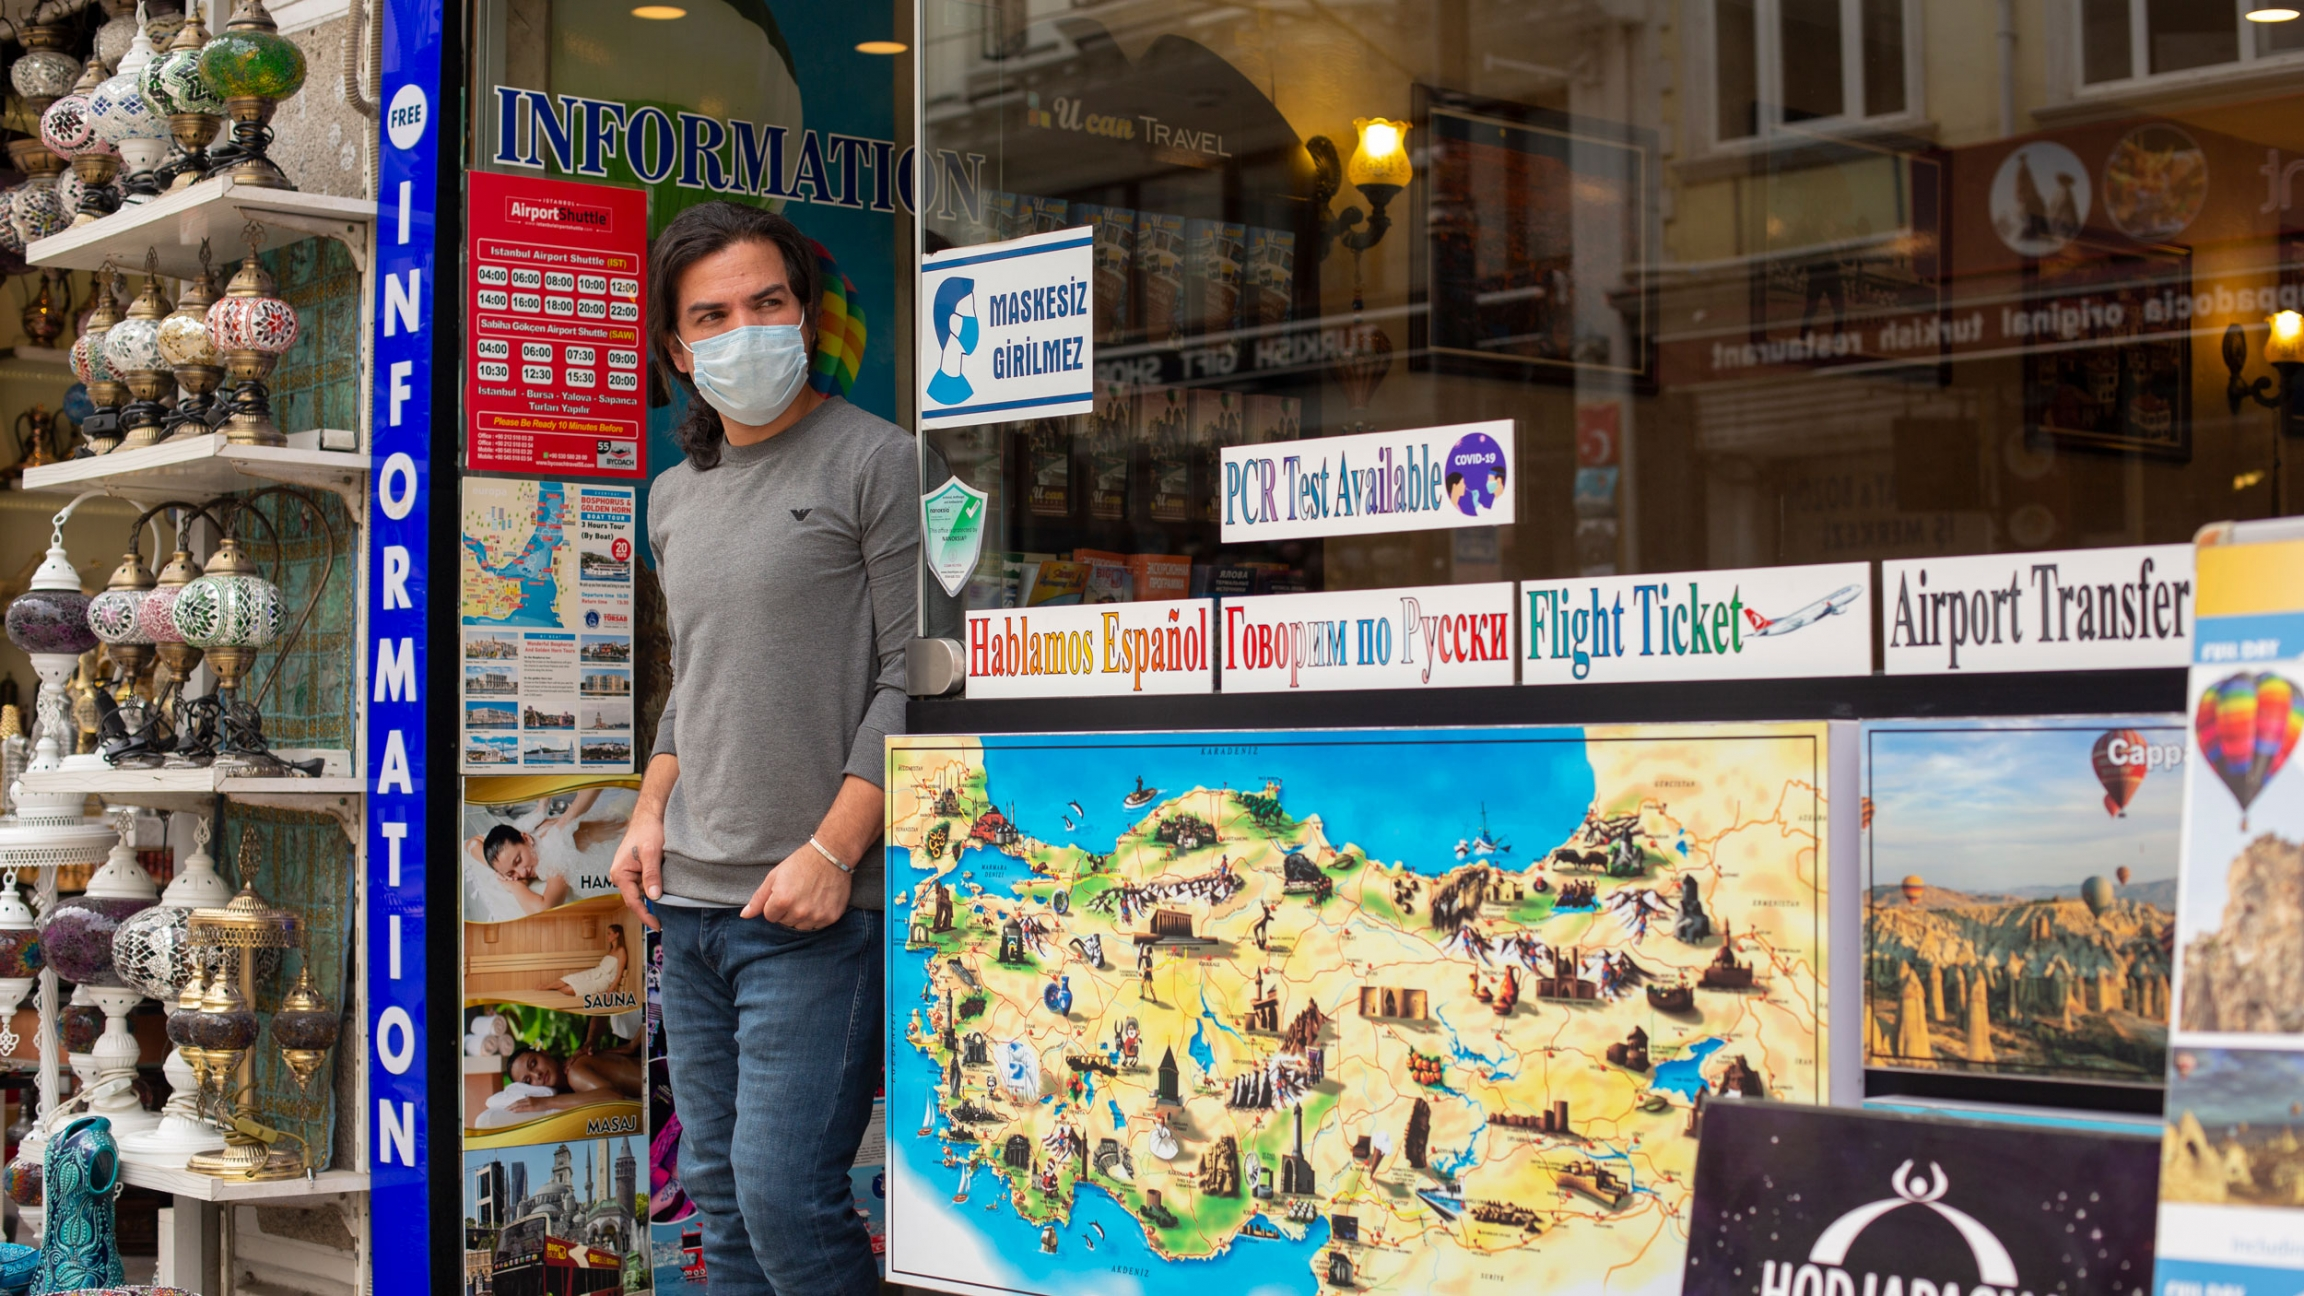 A man is shown wearing a face mask and standing in the doorway of a sightseeing store with maps of Istanbul on the windows.